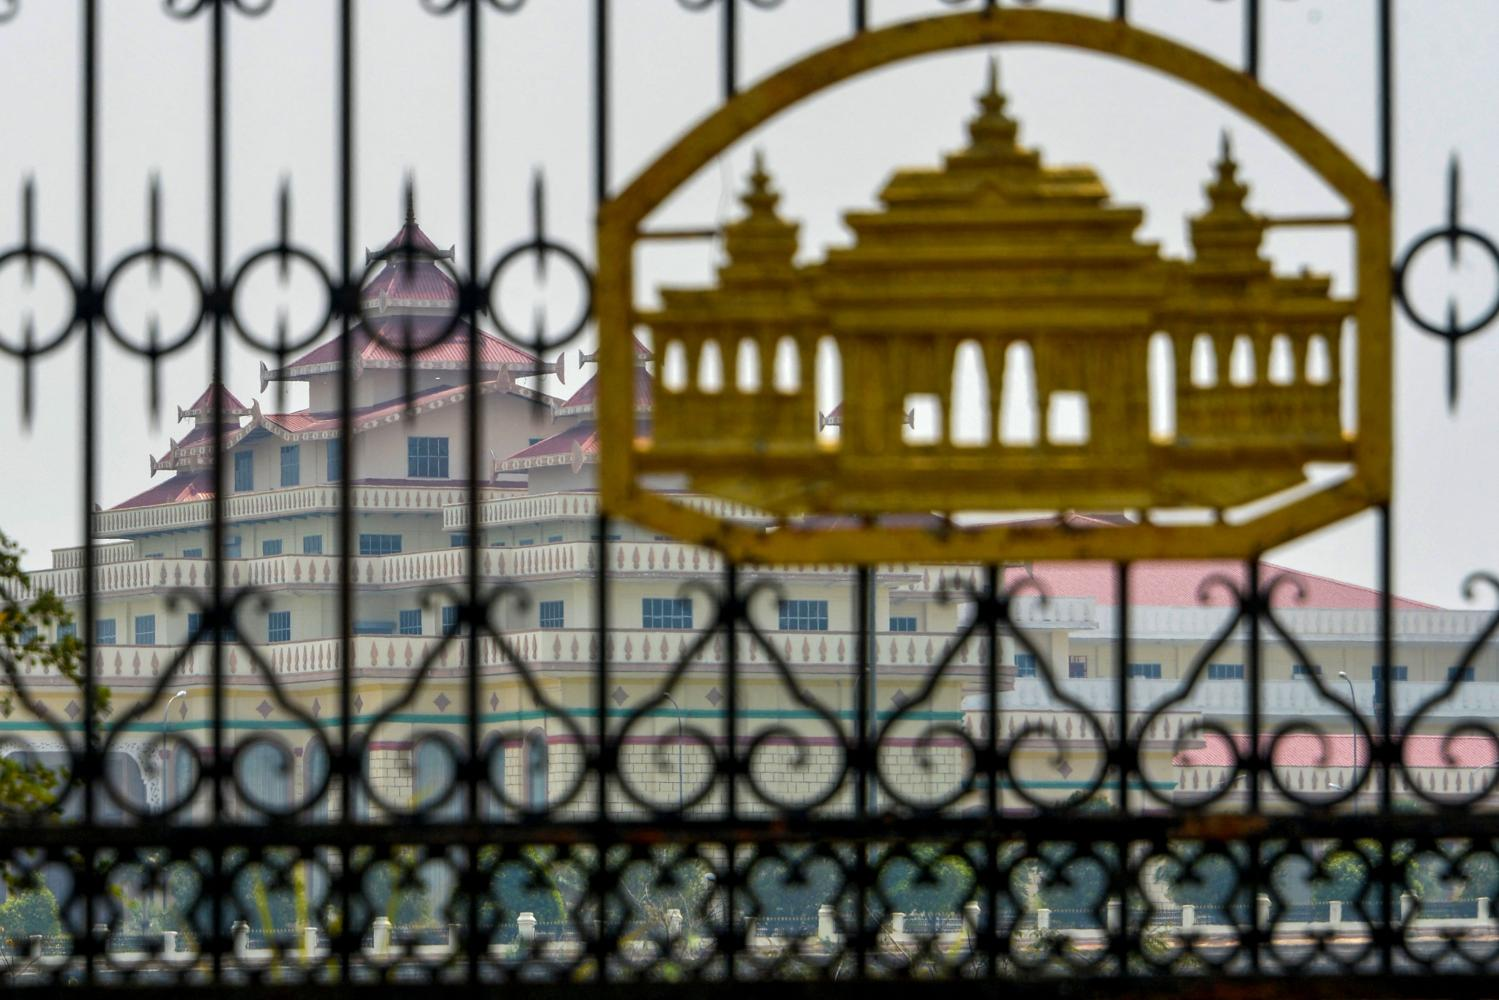 Myanmar's parliament building is seen in Nay Pyi Taw on March 14 as demonstrations by protesters against the military coup continue across the country. Myanmar's elected parliamentarians are set to declare a parallel civilian government in a challenge to the coup leaders. (Photo: AFP)